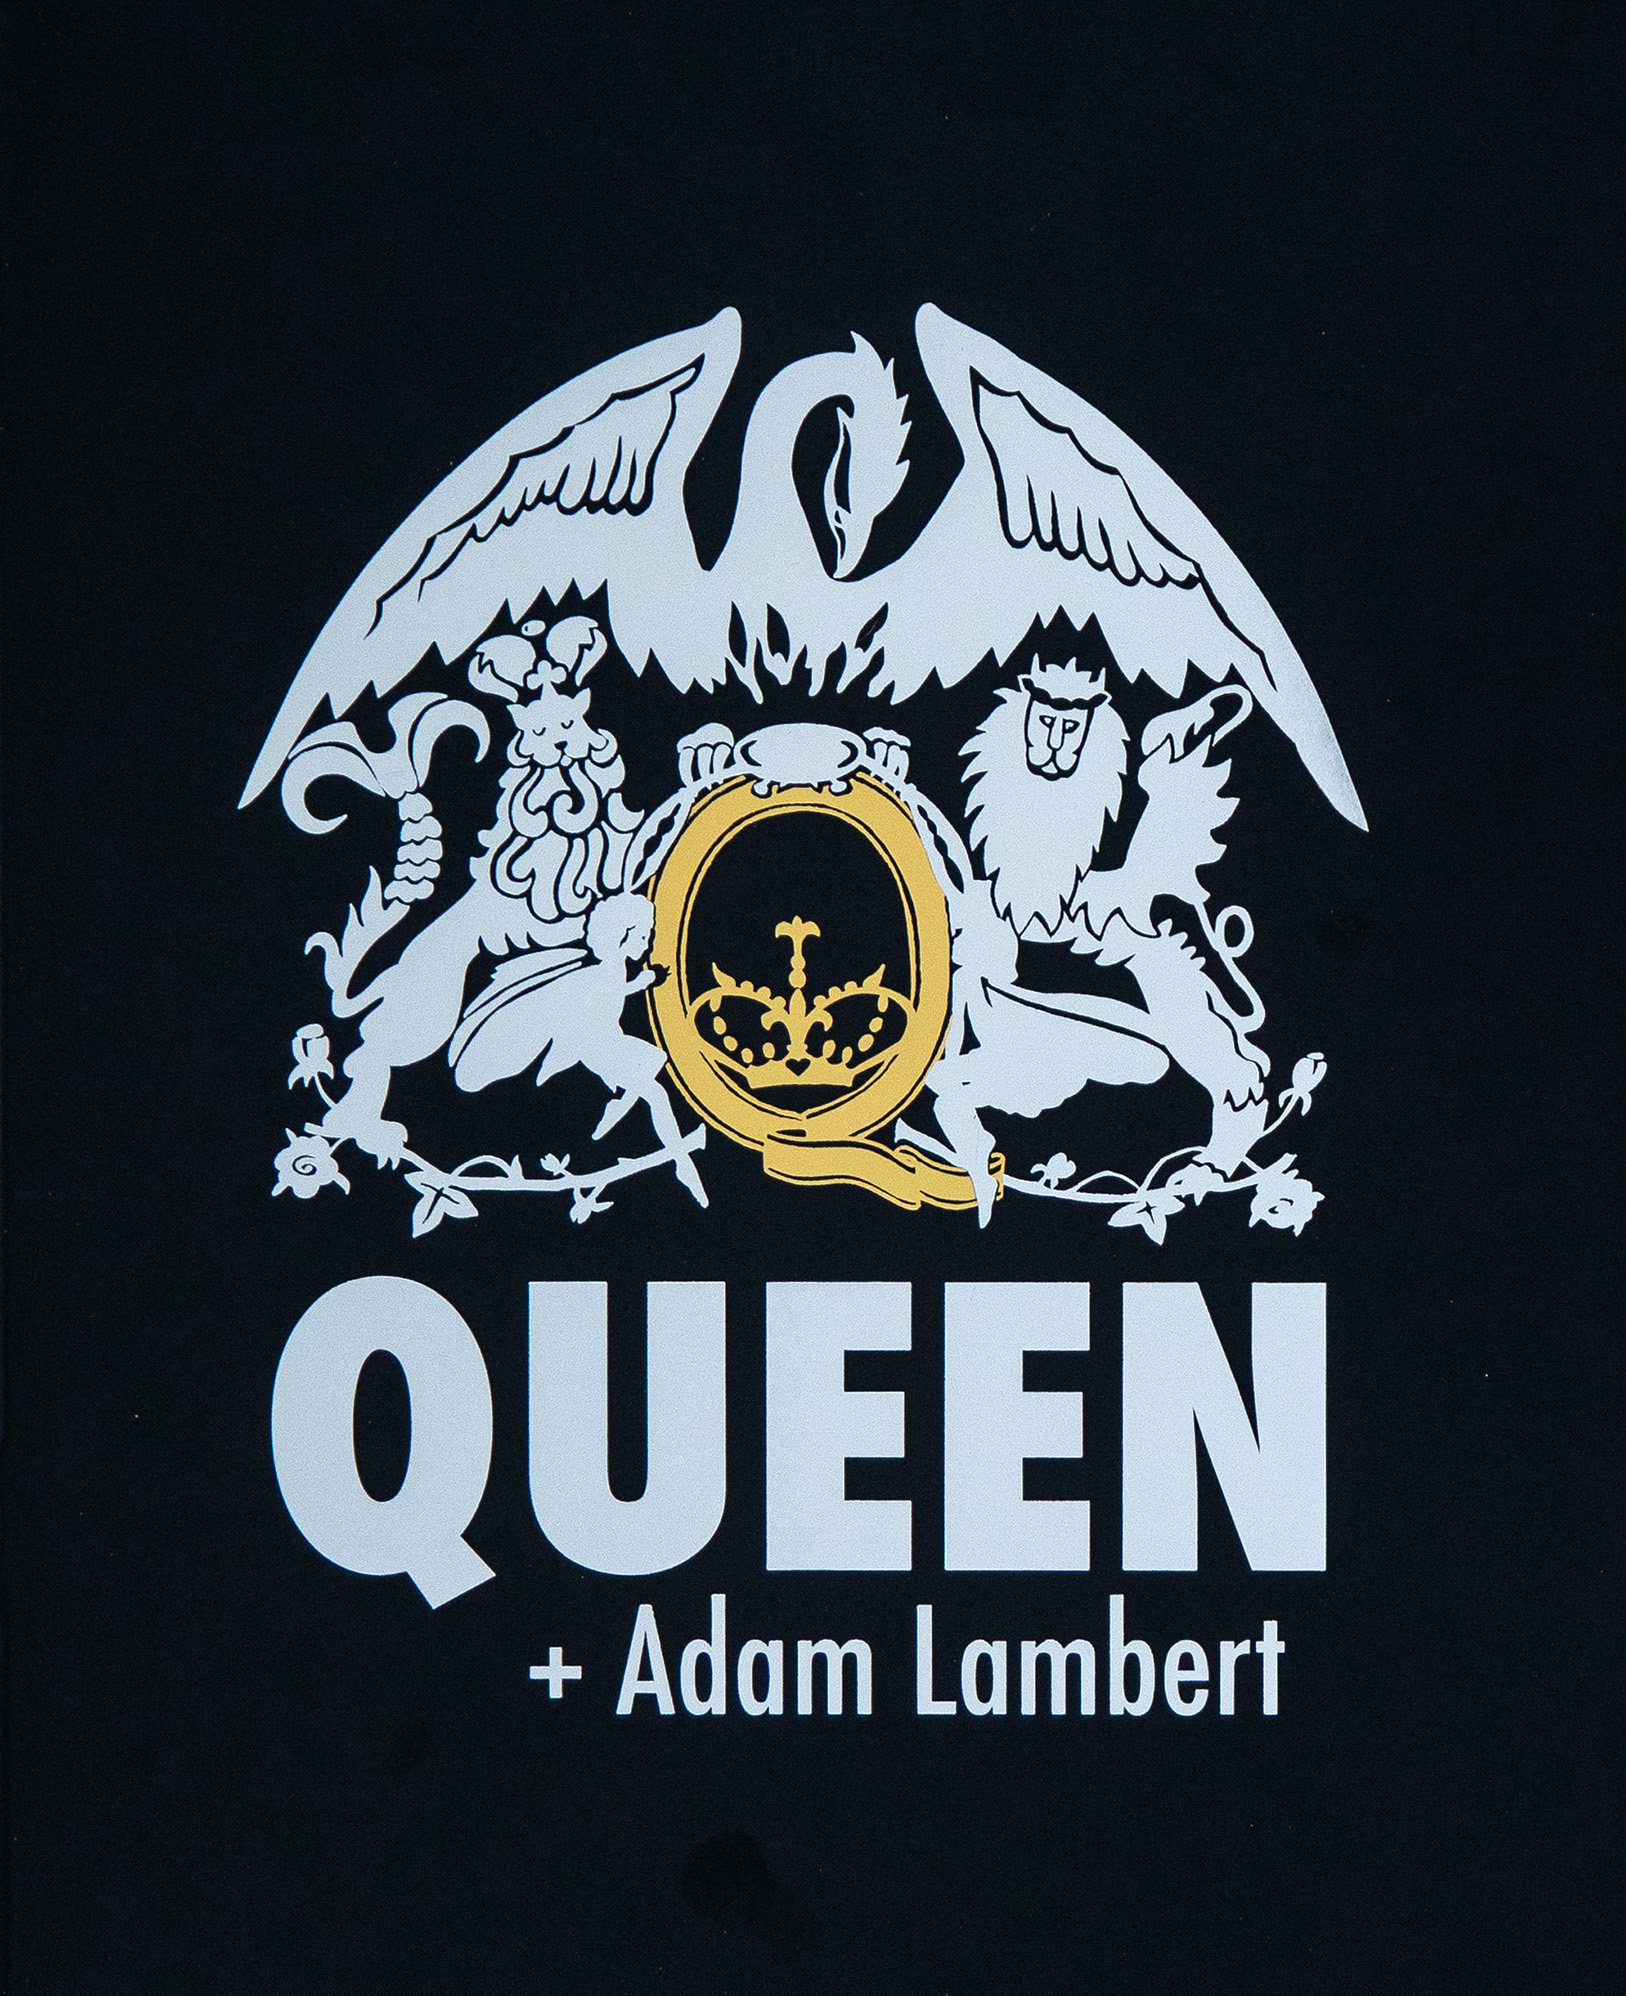 Queen + Adam Lambert - 2015 tour